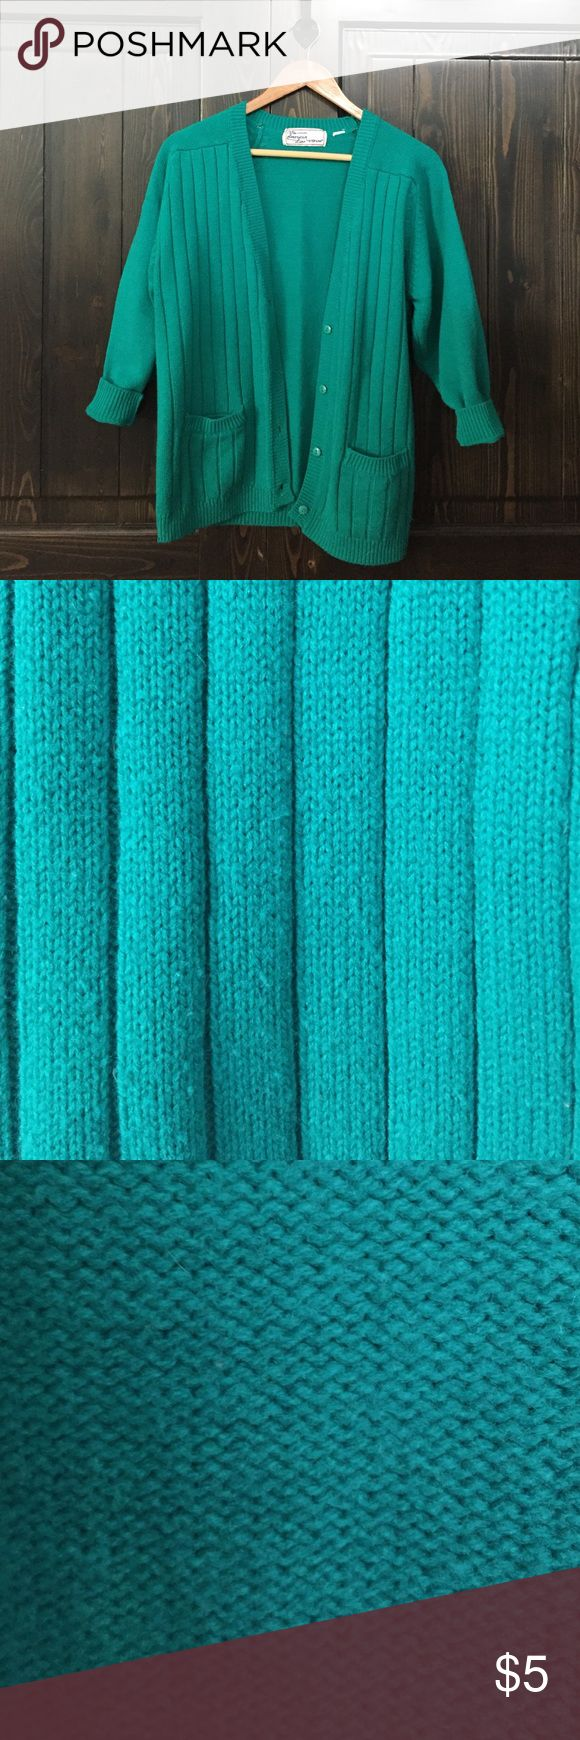 Cozy Turquoise Cardigan Cozy turquoise cardigan perfect for layering Sweaters Cardigans